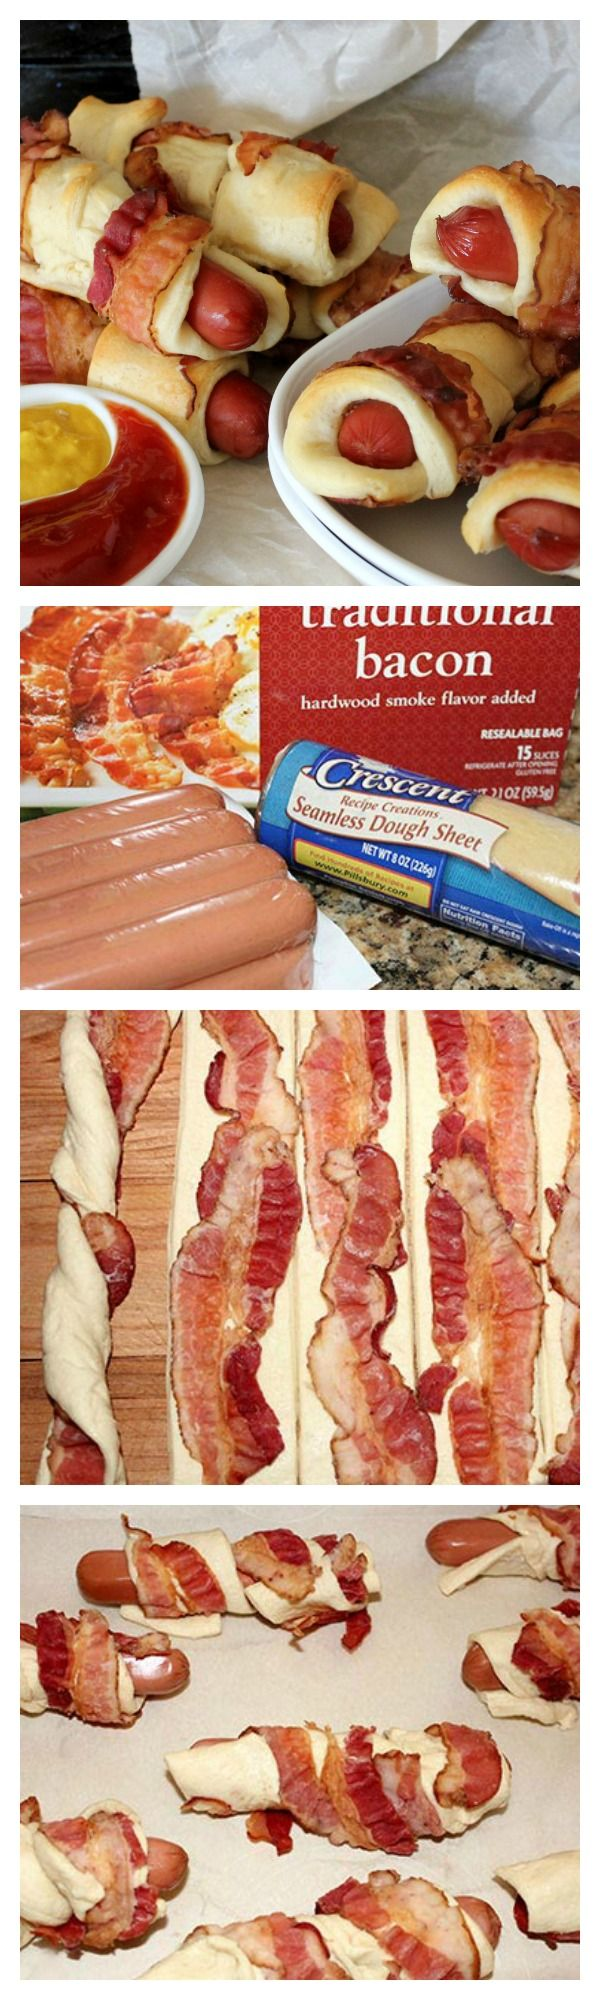 BACON wrapped crescent dogs!